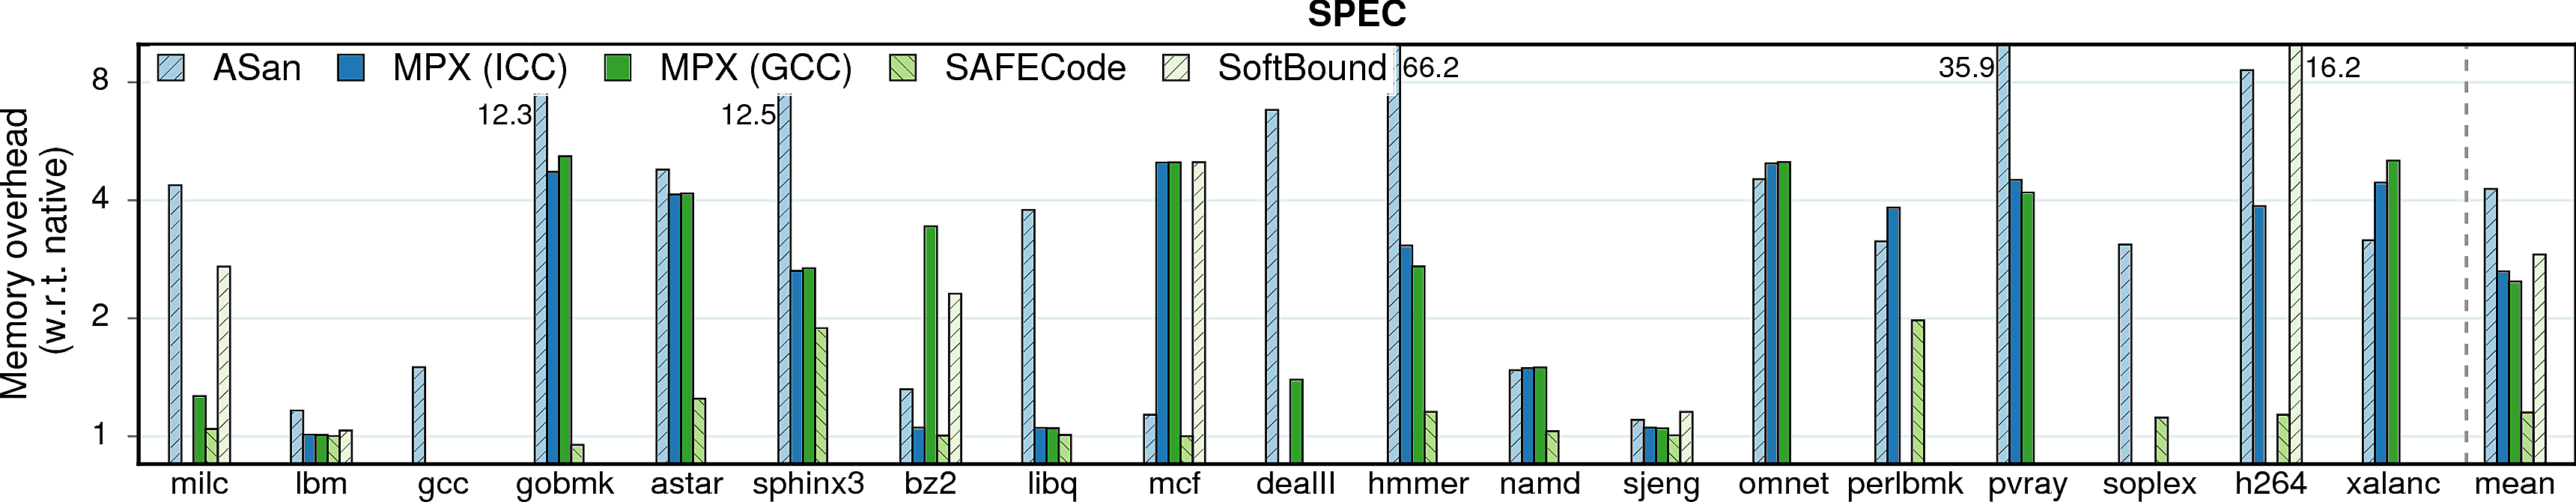 Memory consumption overheads of SPEC